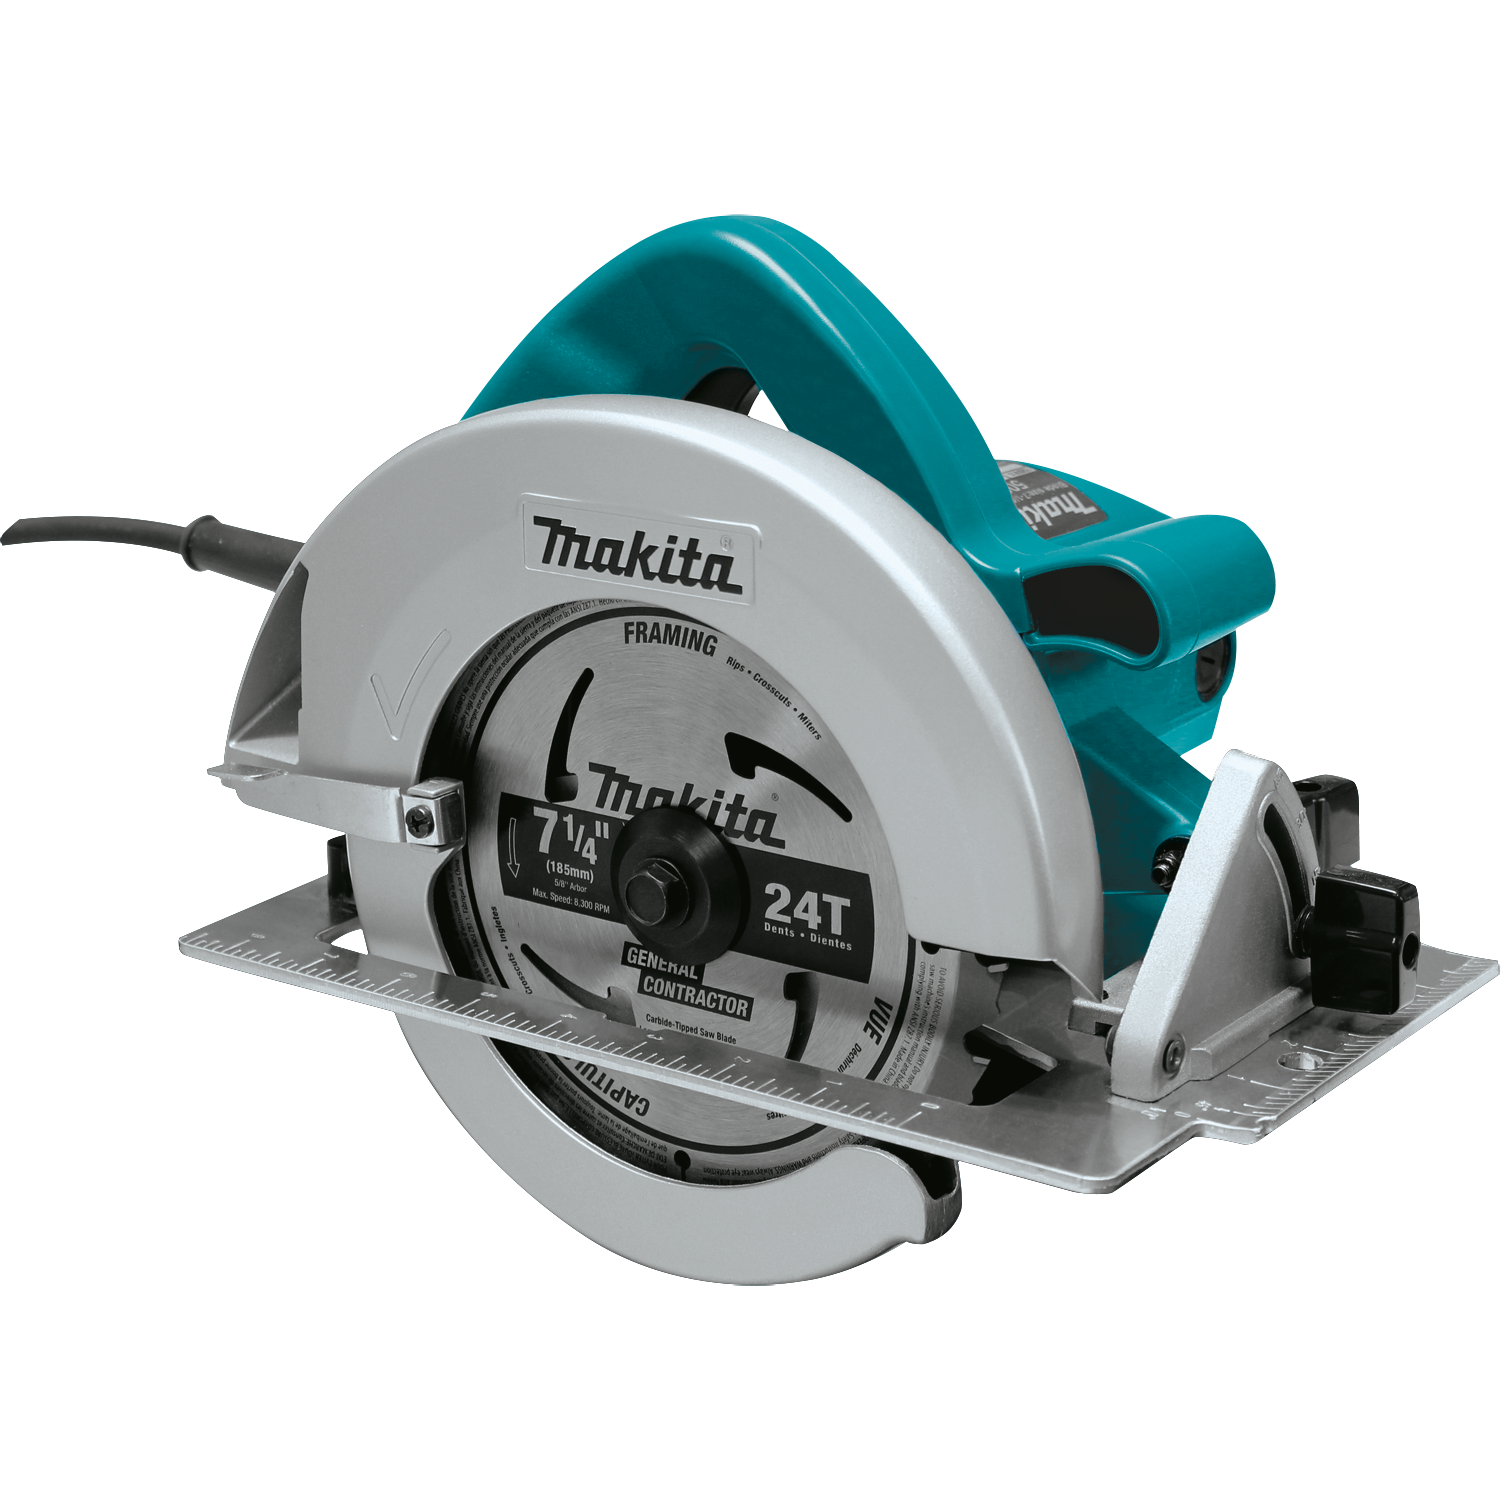 Makita usa product details 5007f 5007f greentooth Choice Image